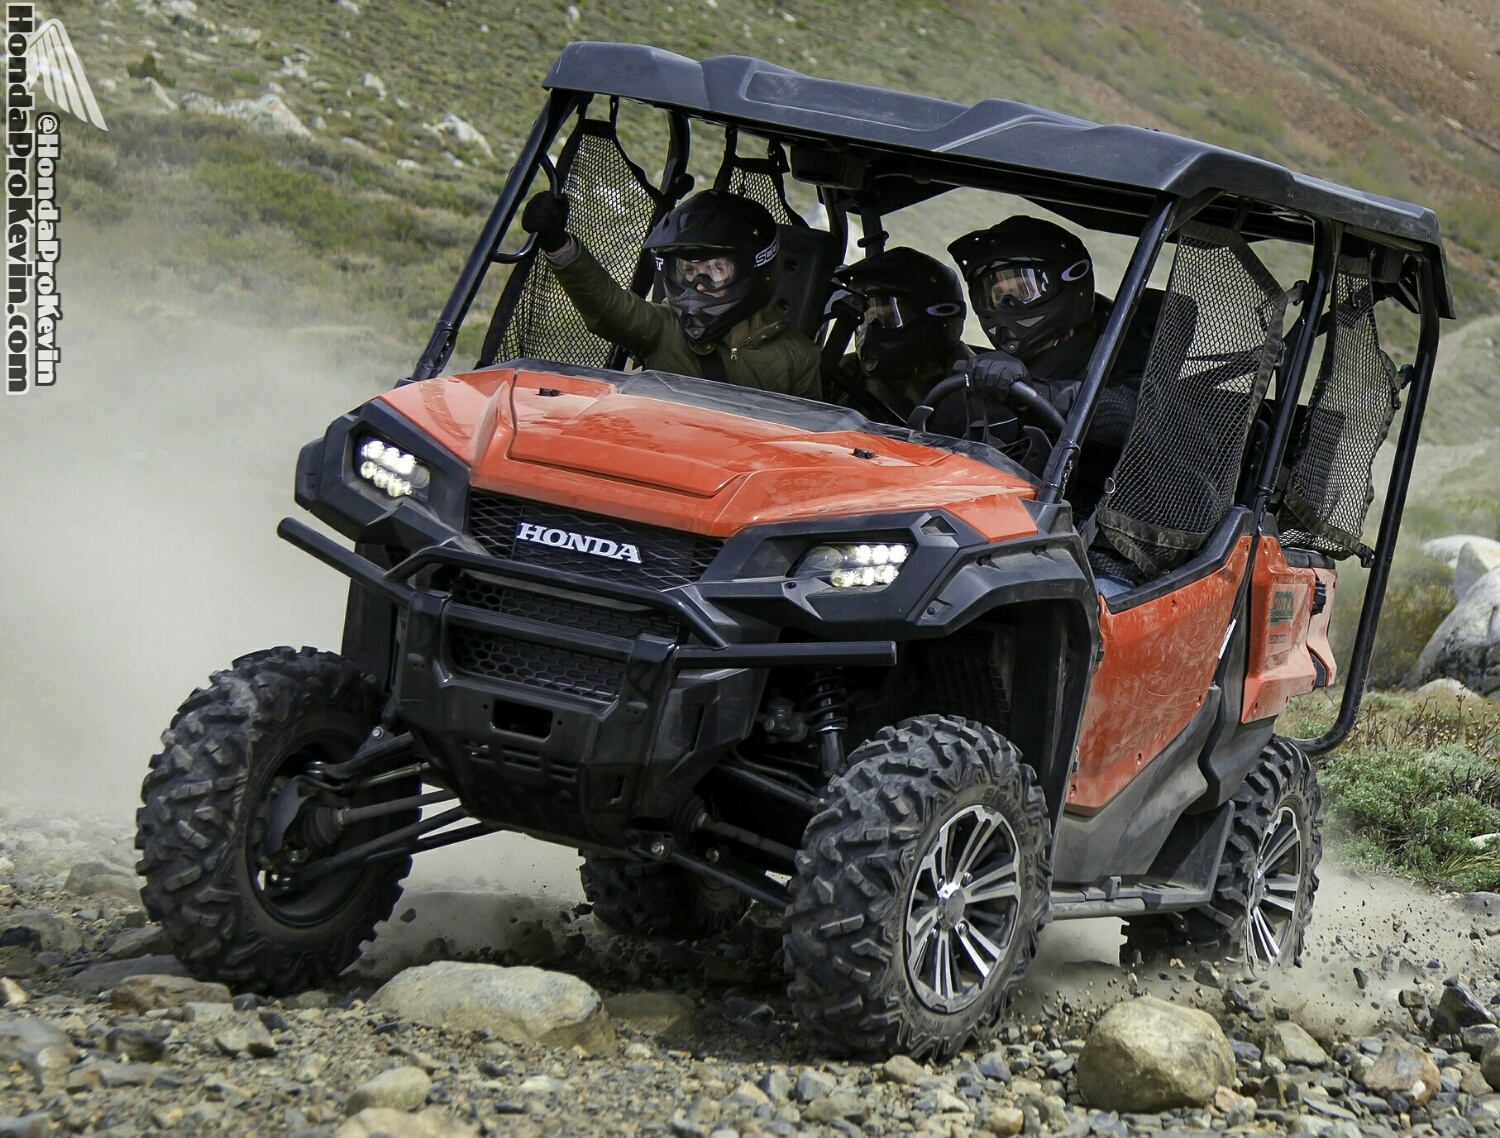 2016 Honda Pioneer 1000 & 1000-5 Frame, Engine, Suspension Pictures - SxS / UTV / Side by Side ATV - SXS1000 - SXS1000M3 - SXS1000M5